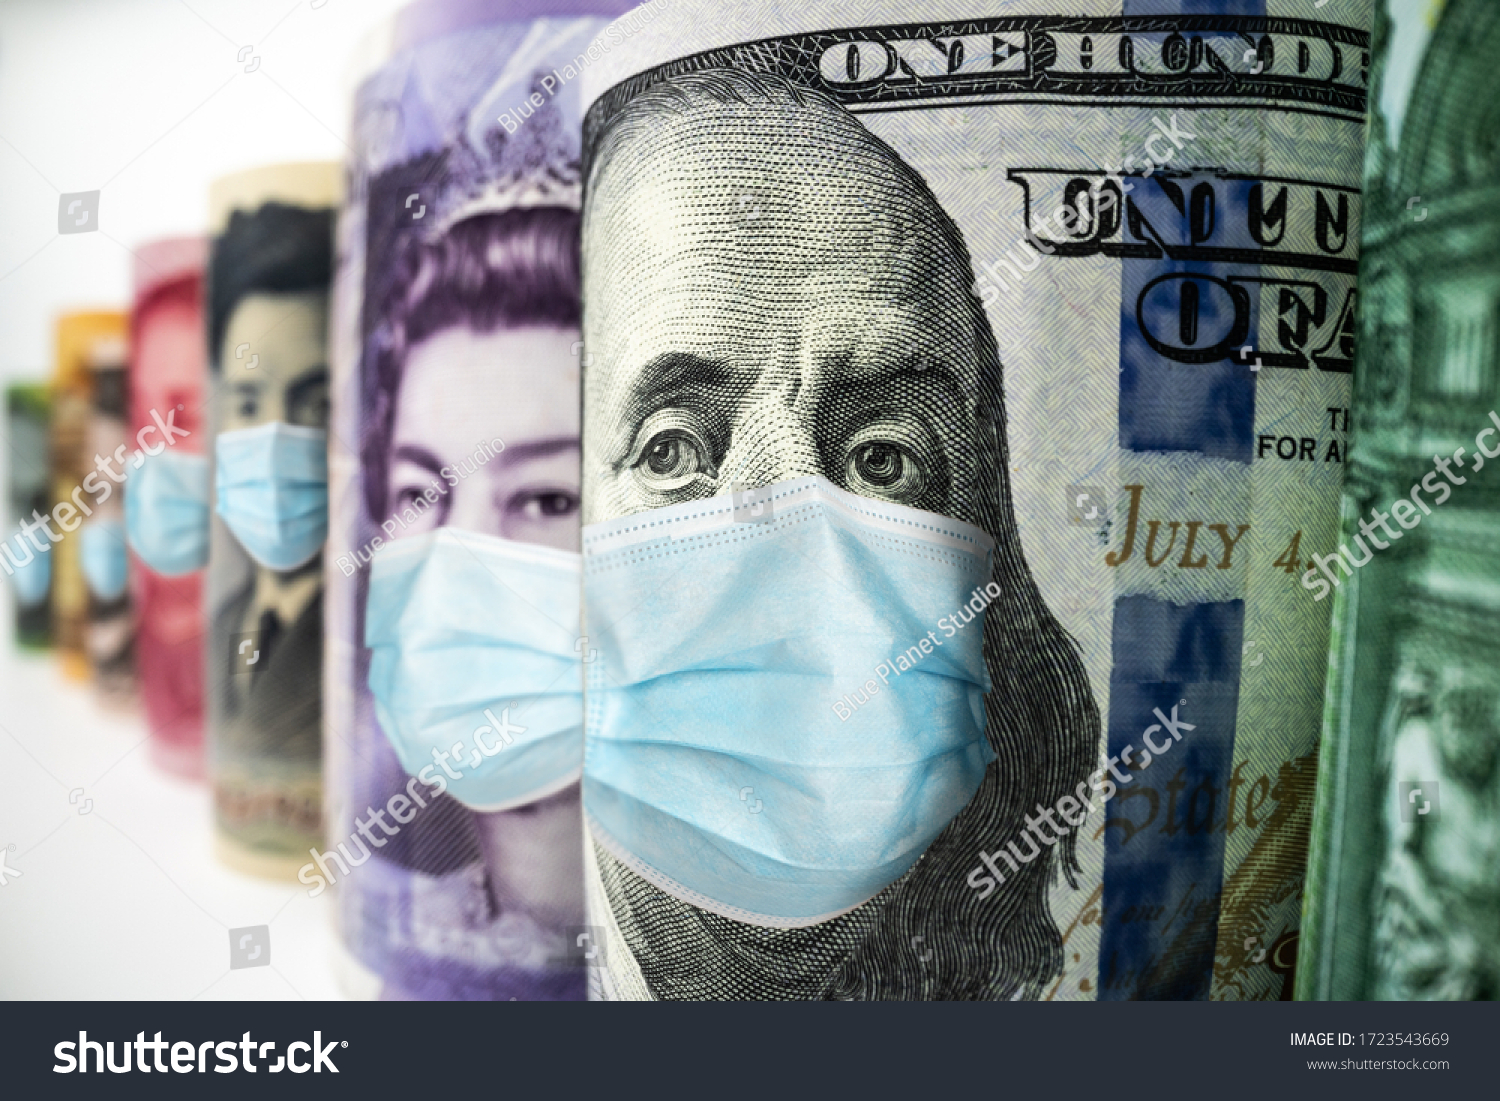 Business and money in covid 19 crisis - International money wearing face mask effected by covid 19 outbreak in concept of money saving and money investment under covid 19 situation. #1723543669